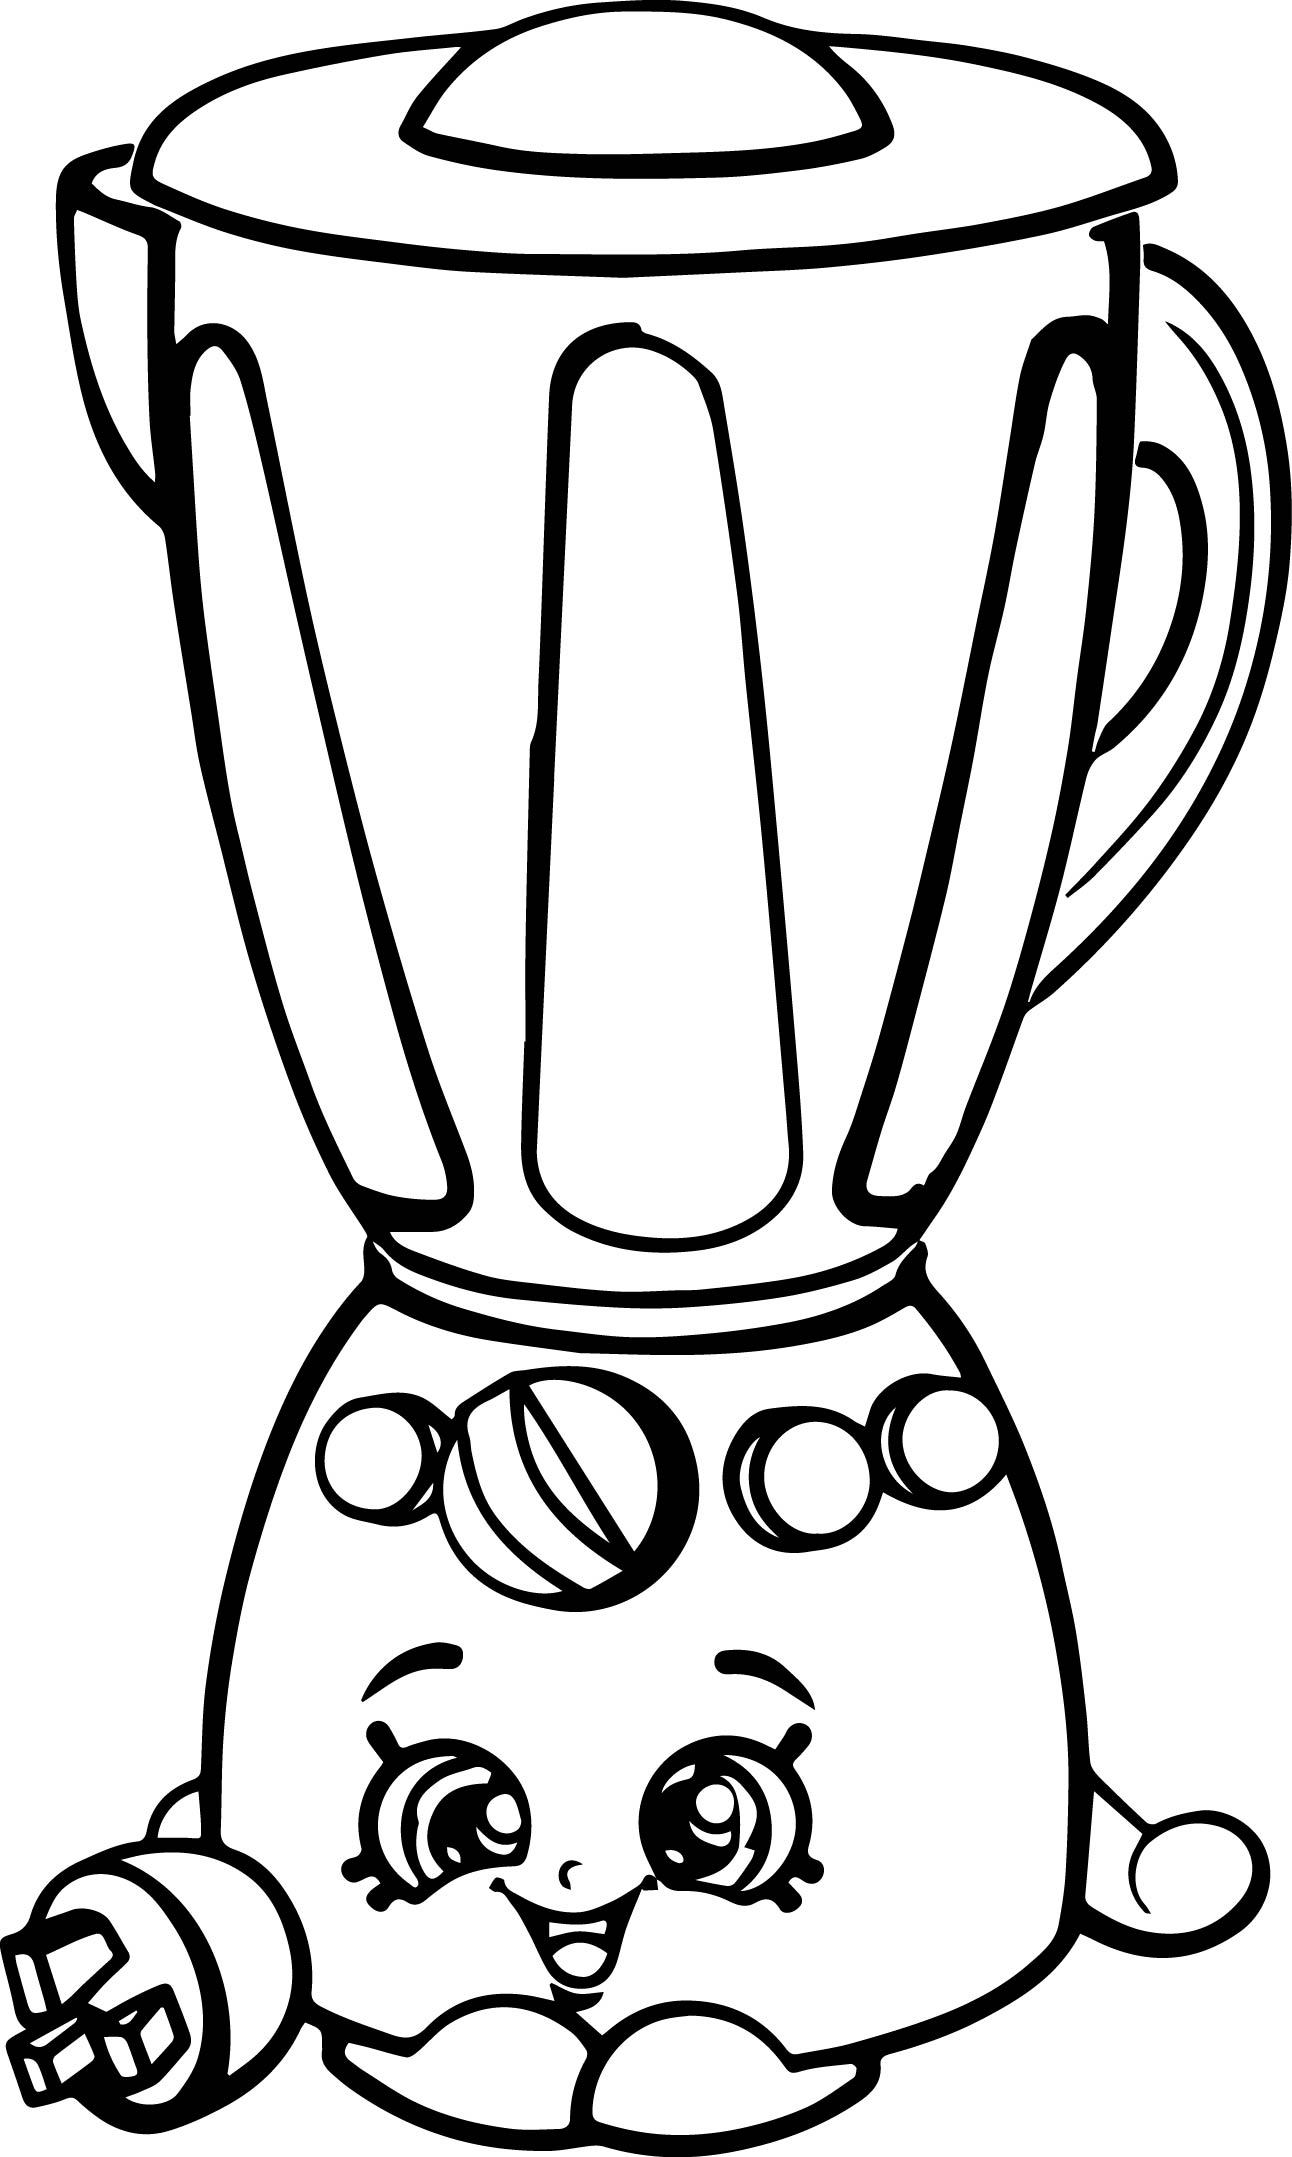 5 clipart printable. Shopkins coloring pages